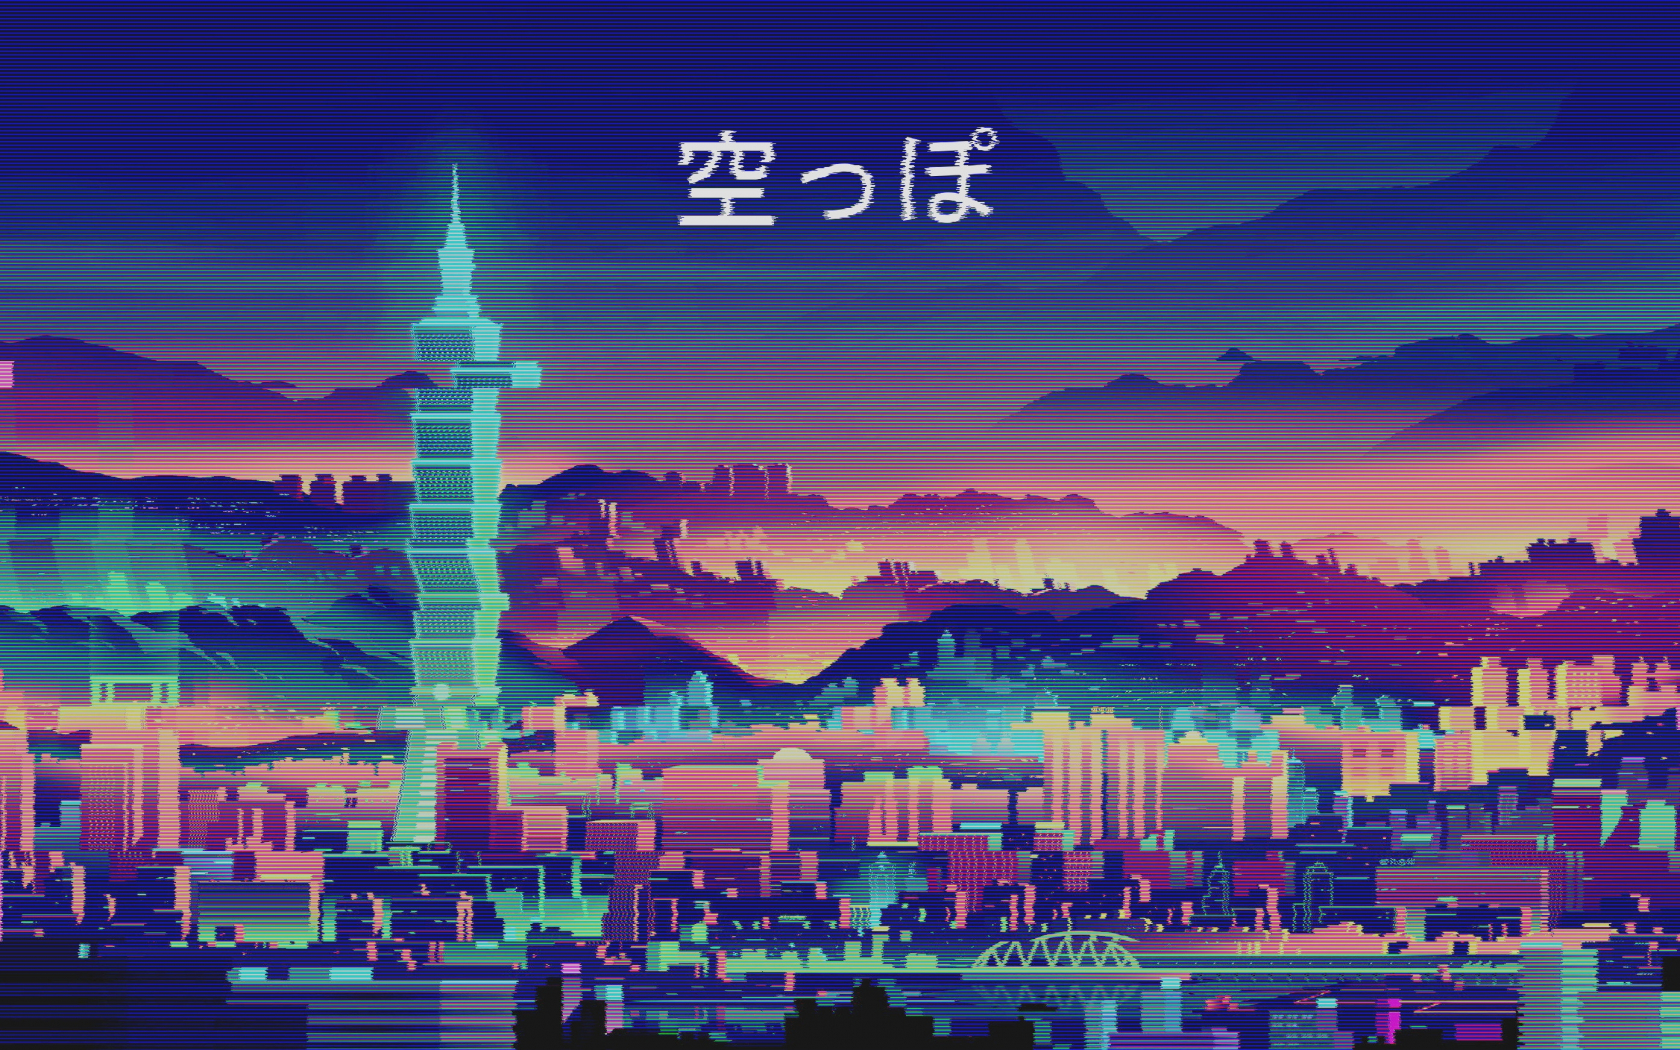 Free Download Vaporwave Hd Anime City Wallpaper Cool Wallpapers Hd